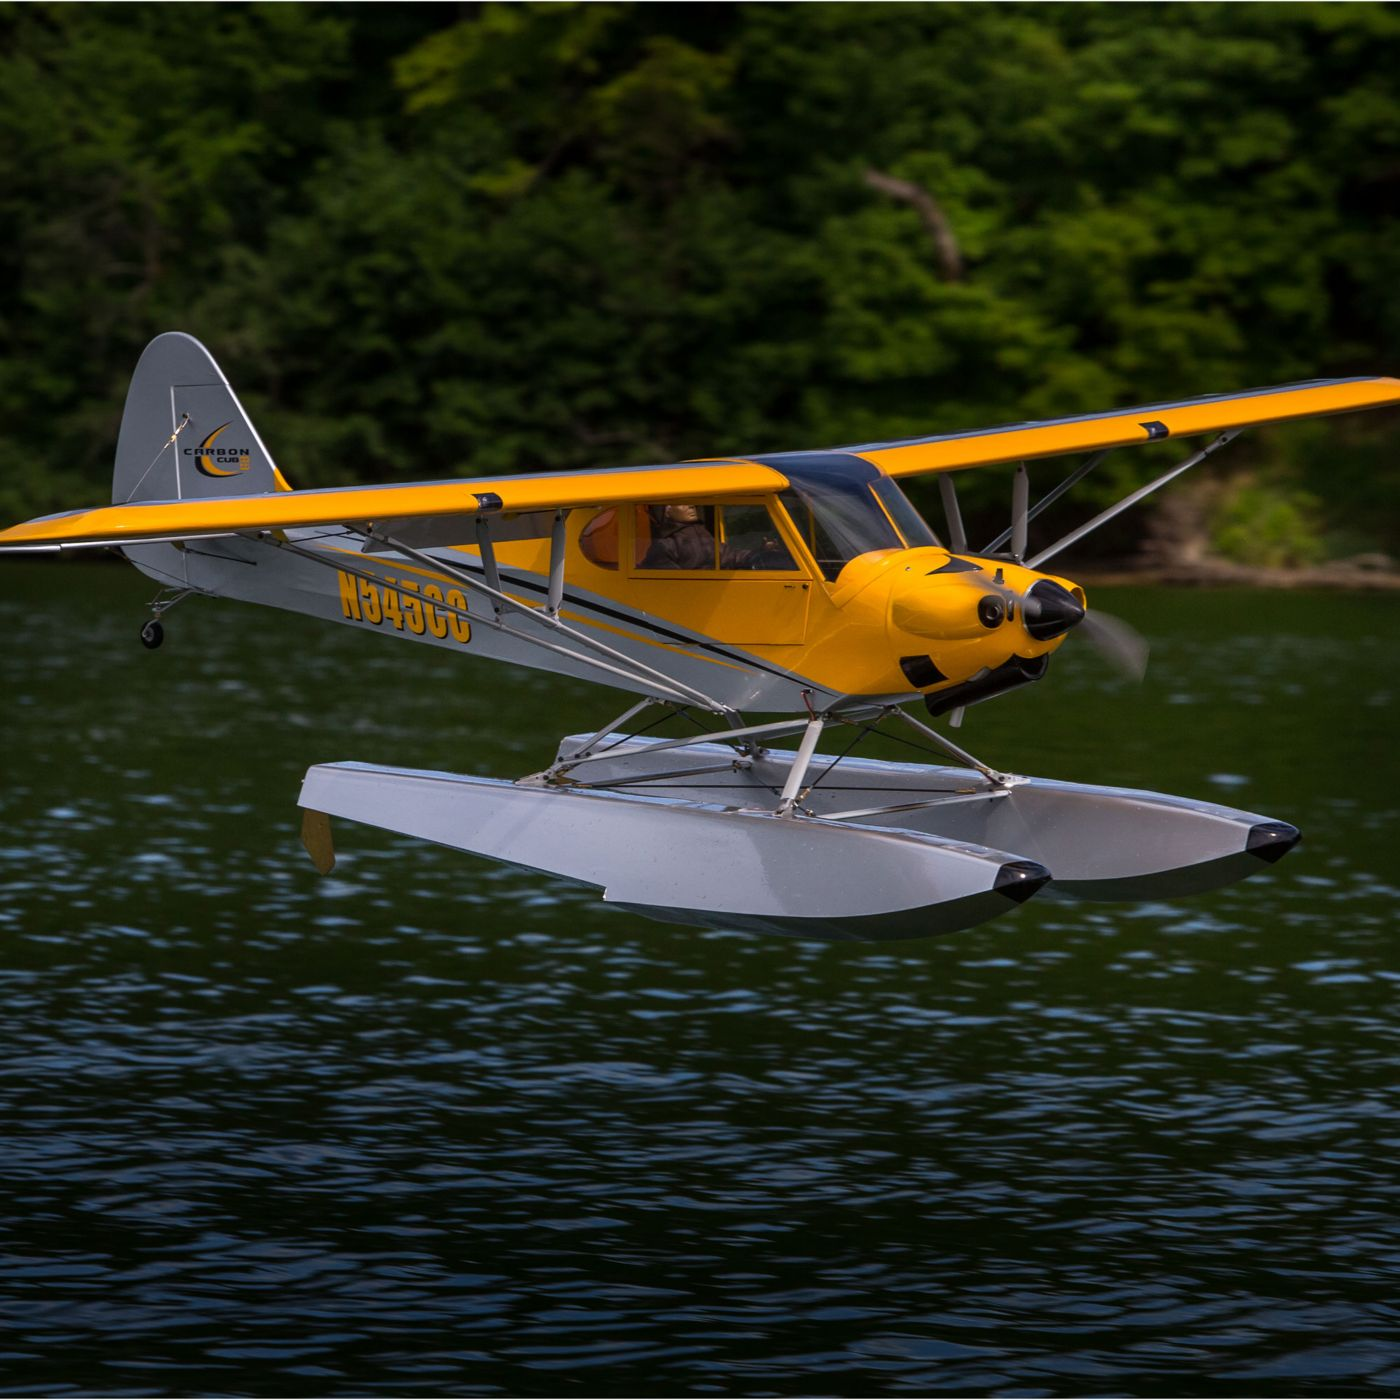 Hangar 9 Carbon Cub RC Airplane with floats